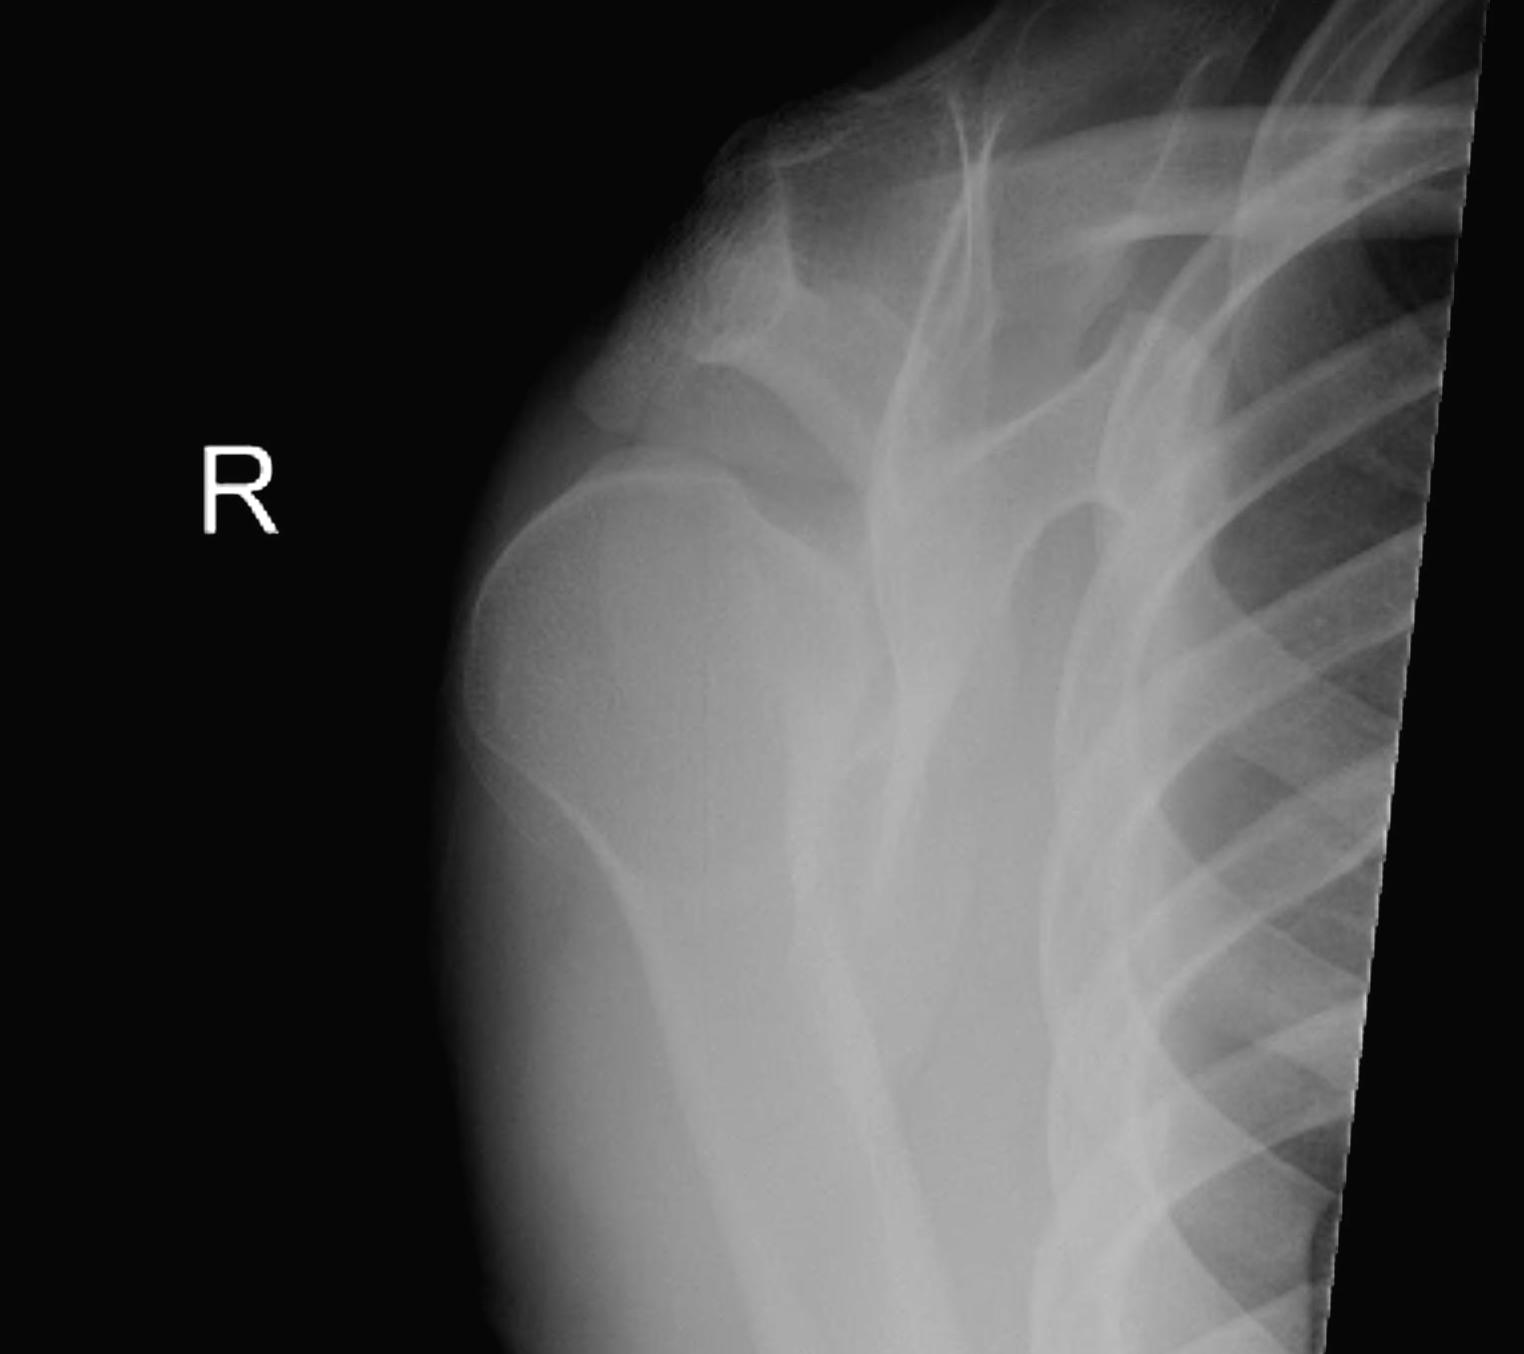 Posterior Shoulder Dislocation Scapula Lateral